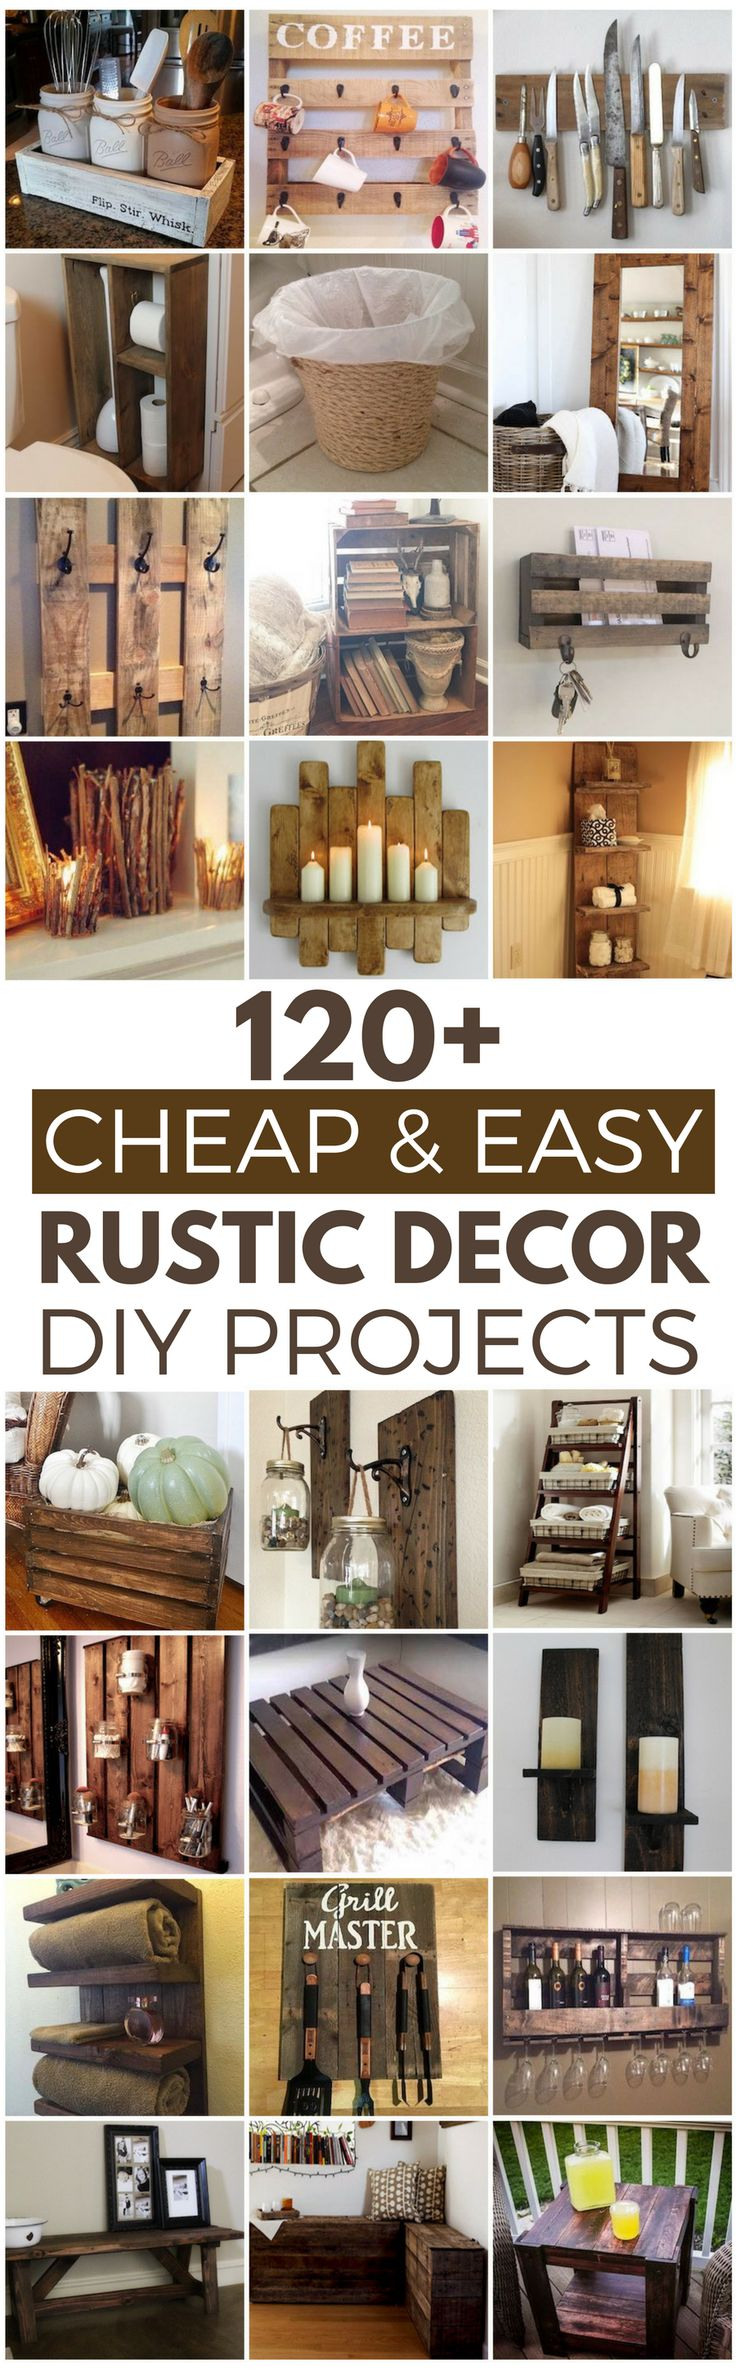 25 Best Ideas About Country Homes Decor On Pinterest Home Decorators Catalog Best Ideas of Home Decor and Design [homedecoratorscatalog.us]